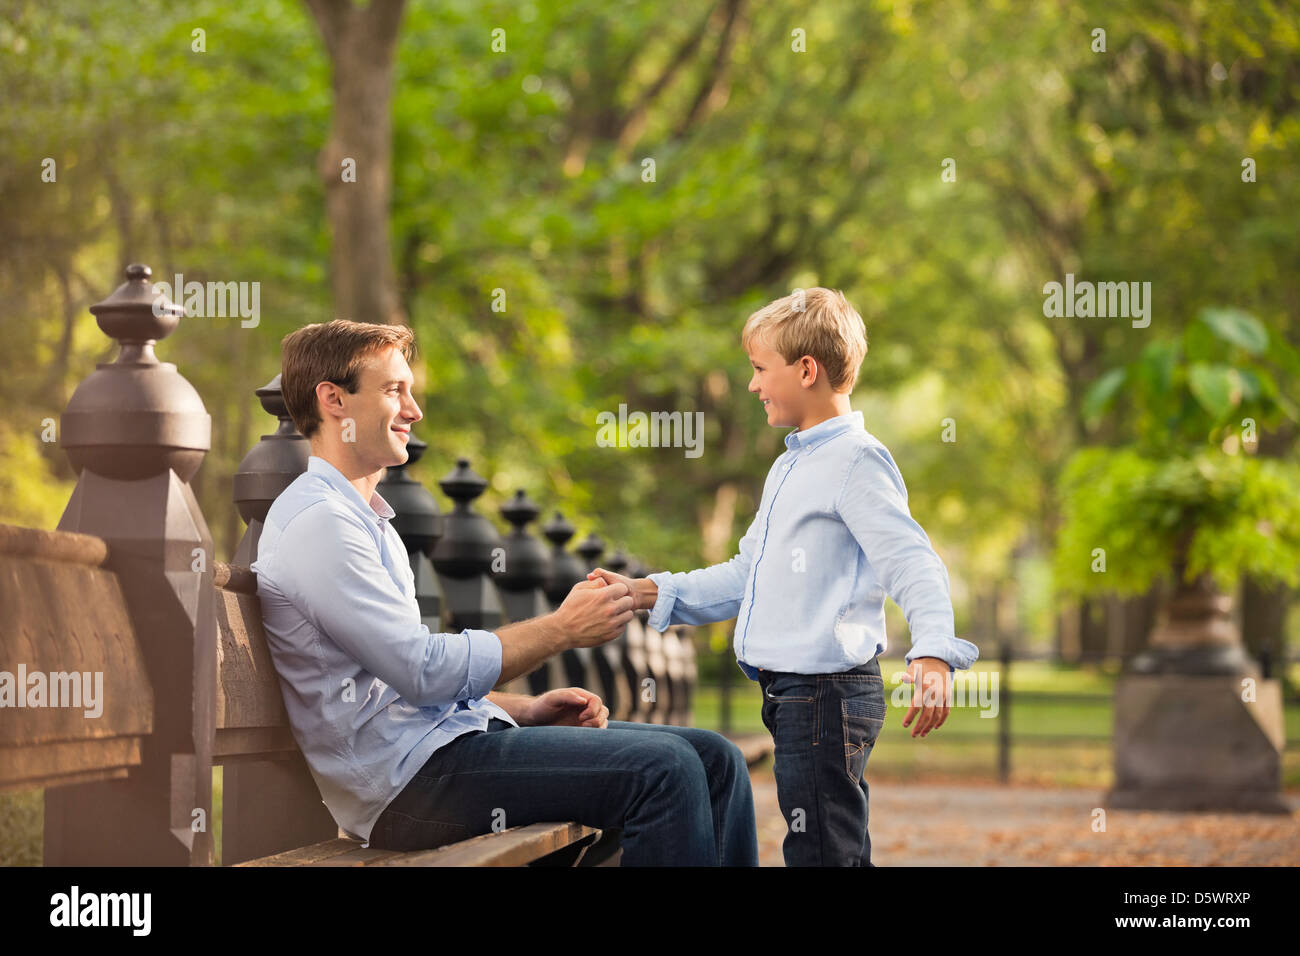 Father and son in urban park - Stock Image